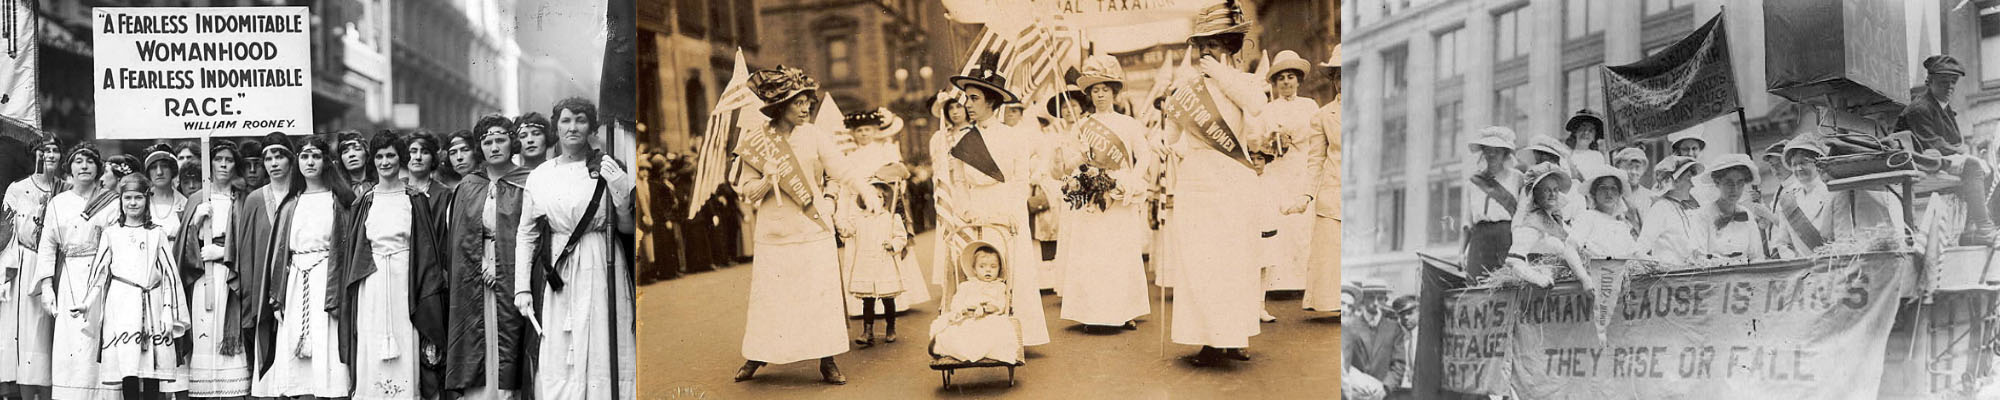 Suffragettes at marches from various time frames